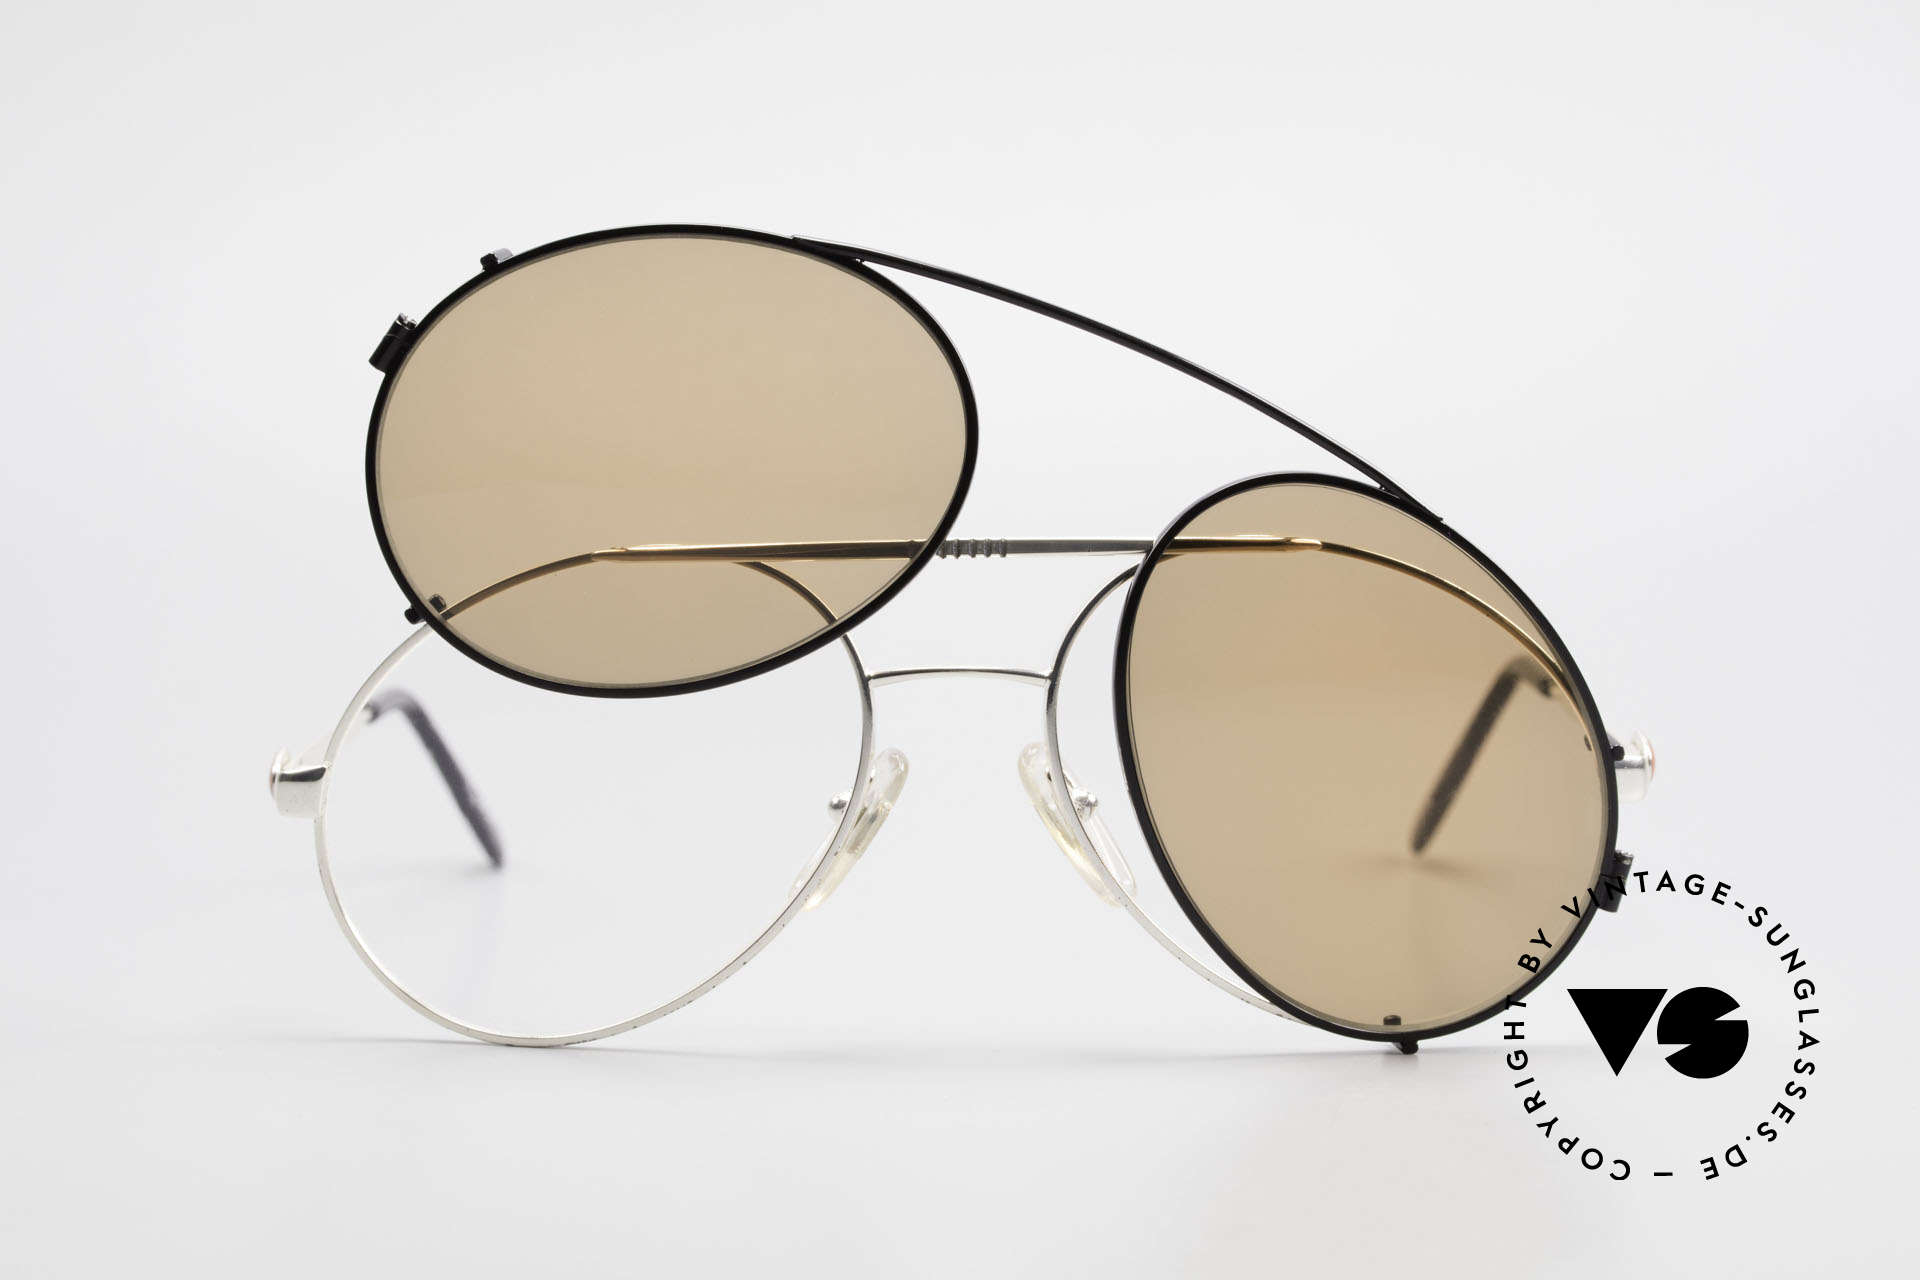 Bugatti 65996 Vintage Frame With Clip On, unworn; like all our vintage Bugatti sunglasses, Made for Men